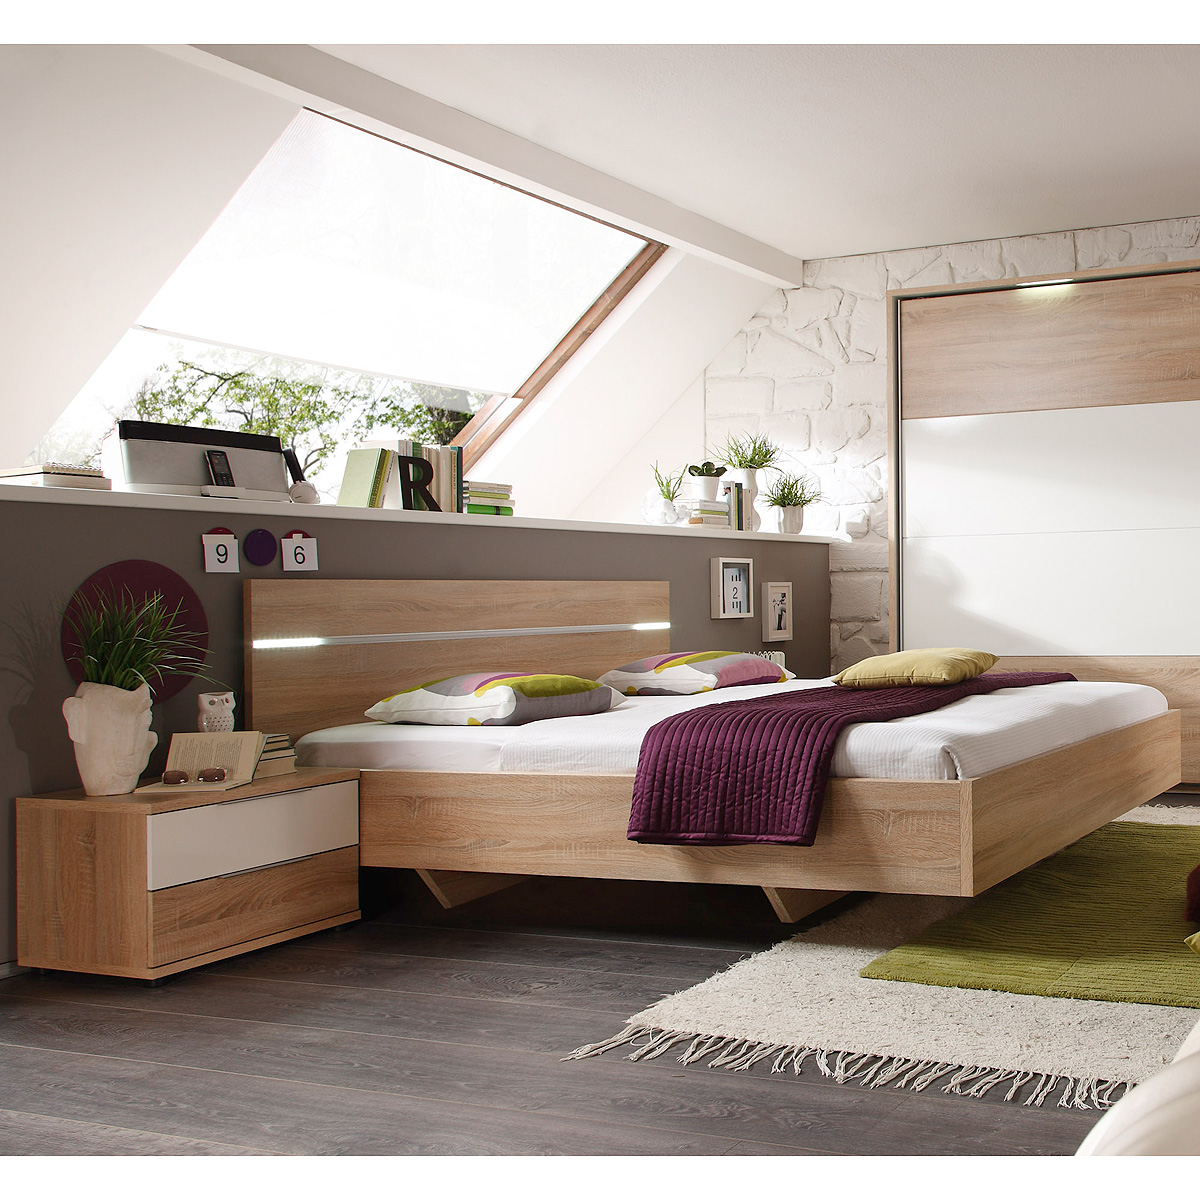 bettanlage pluto bett nachtkommode sonoma eiche wei glanz. Black Bedroom Furniture Sets. Home Design Ideas